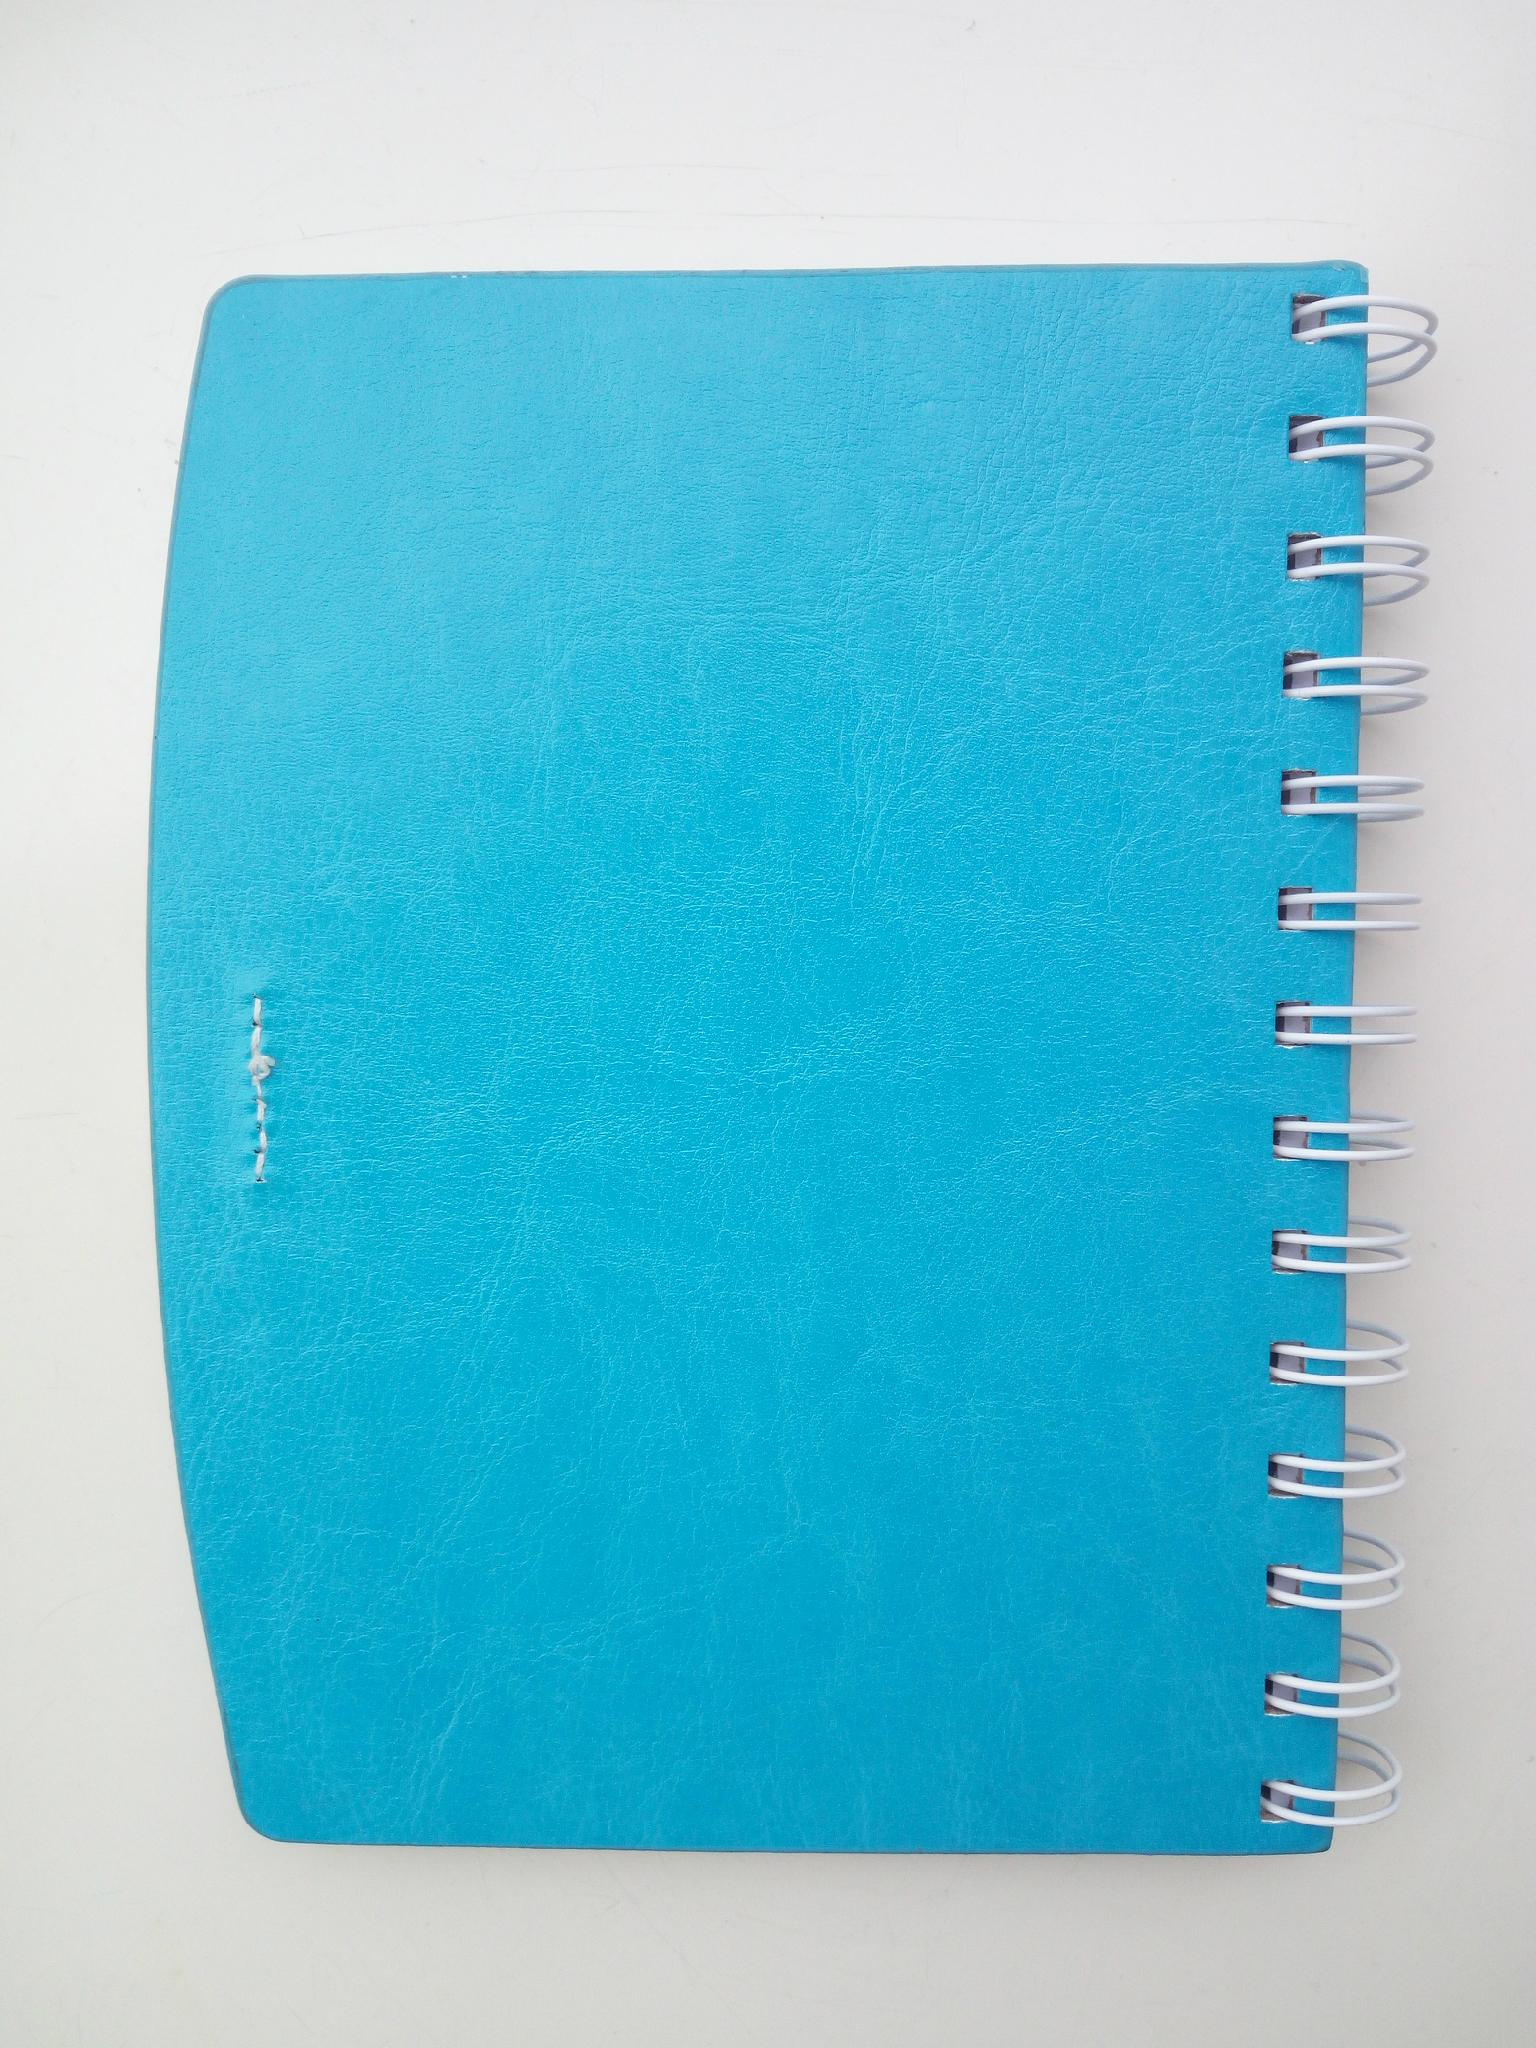 70 pages of notebook with calculator and pen 2